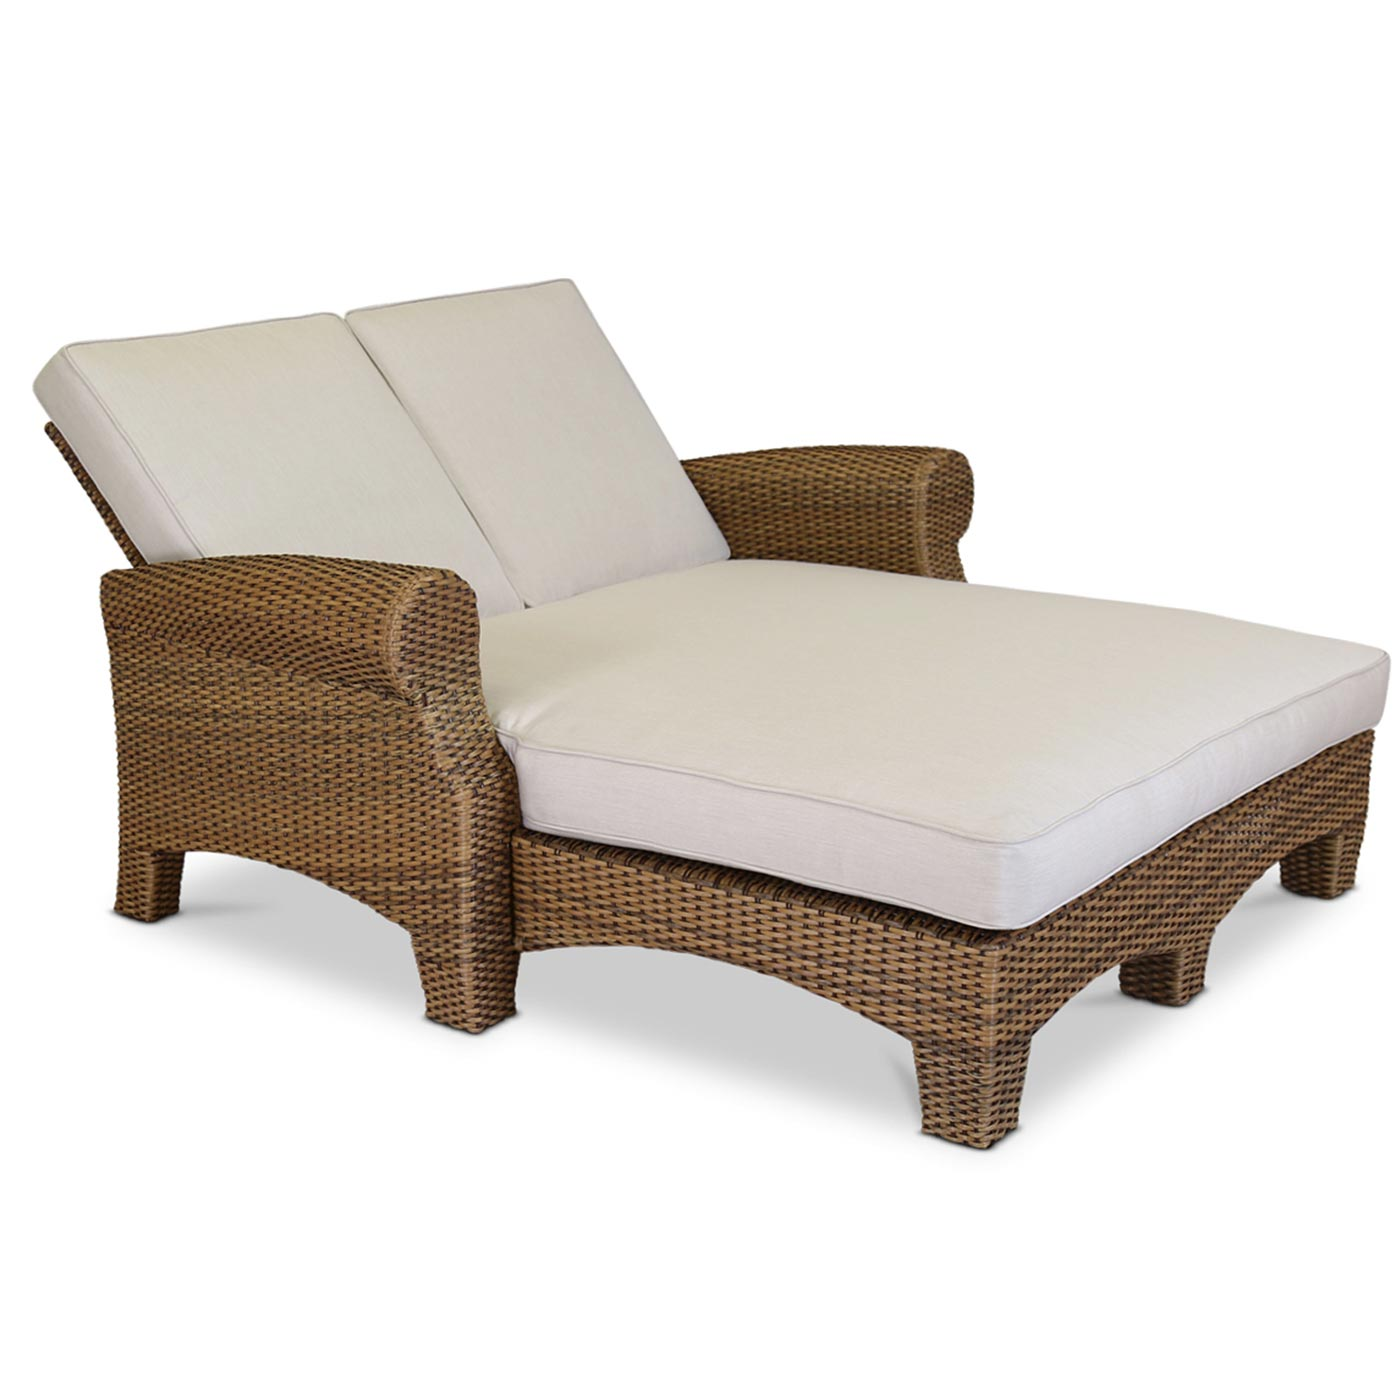 Sunset West Santa Cruz Double Chaise With Cushions In Caramel Free Shipping